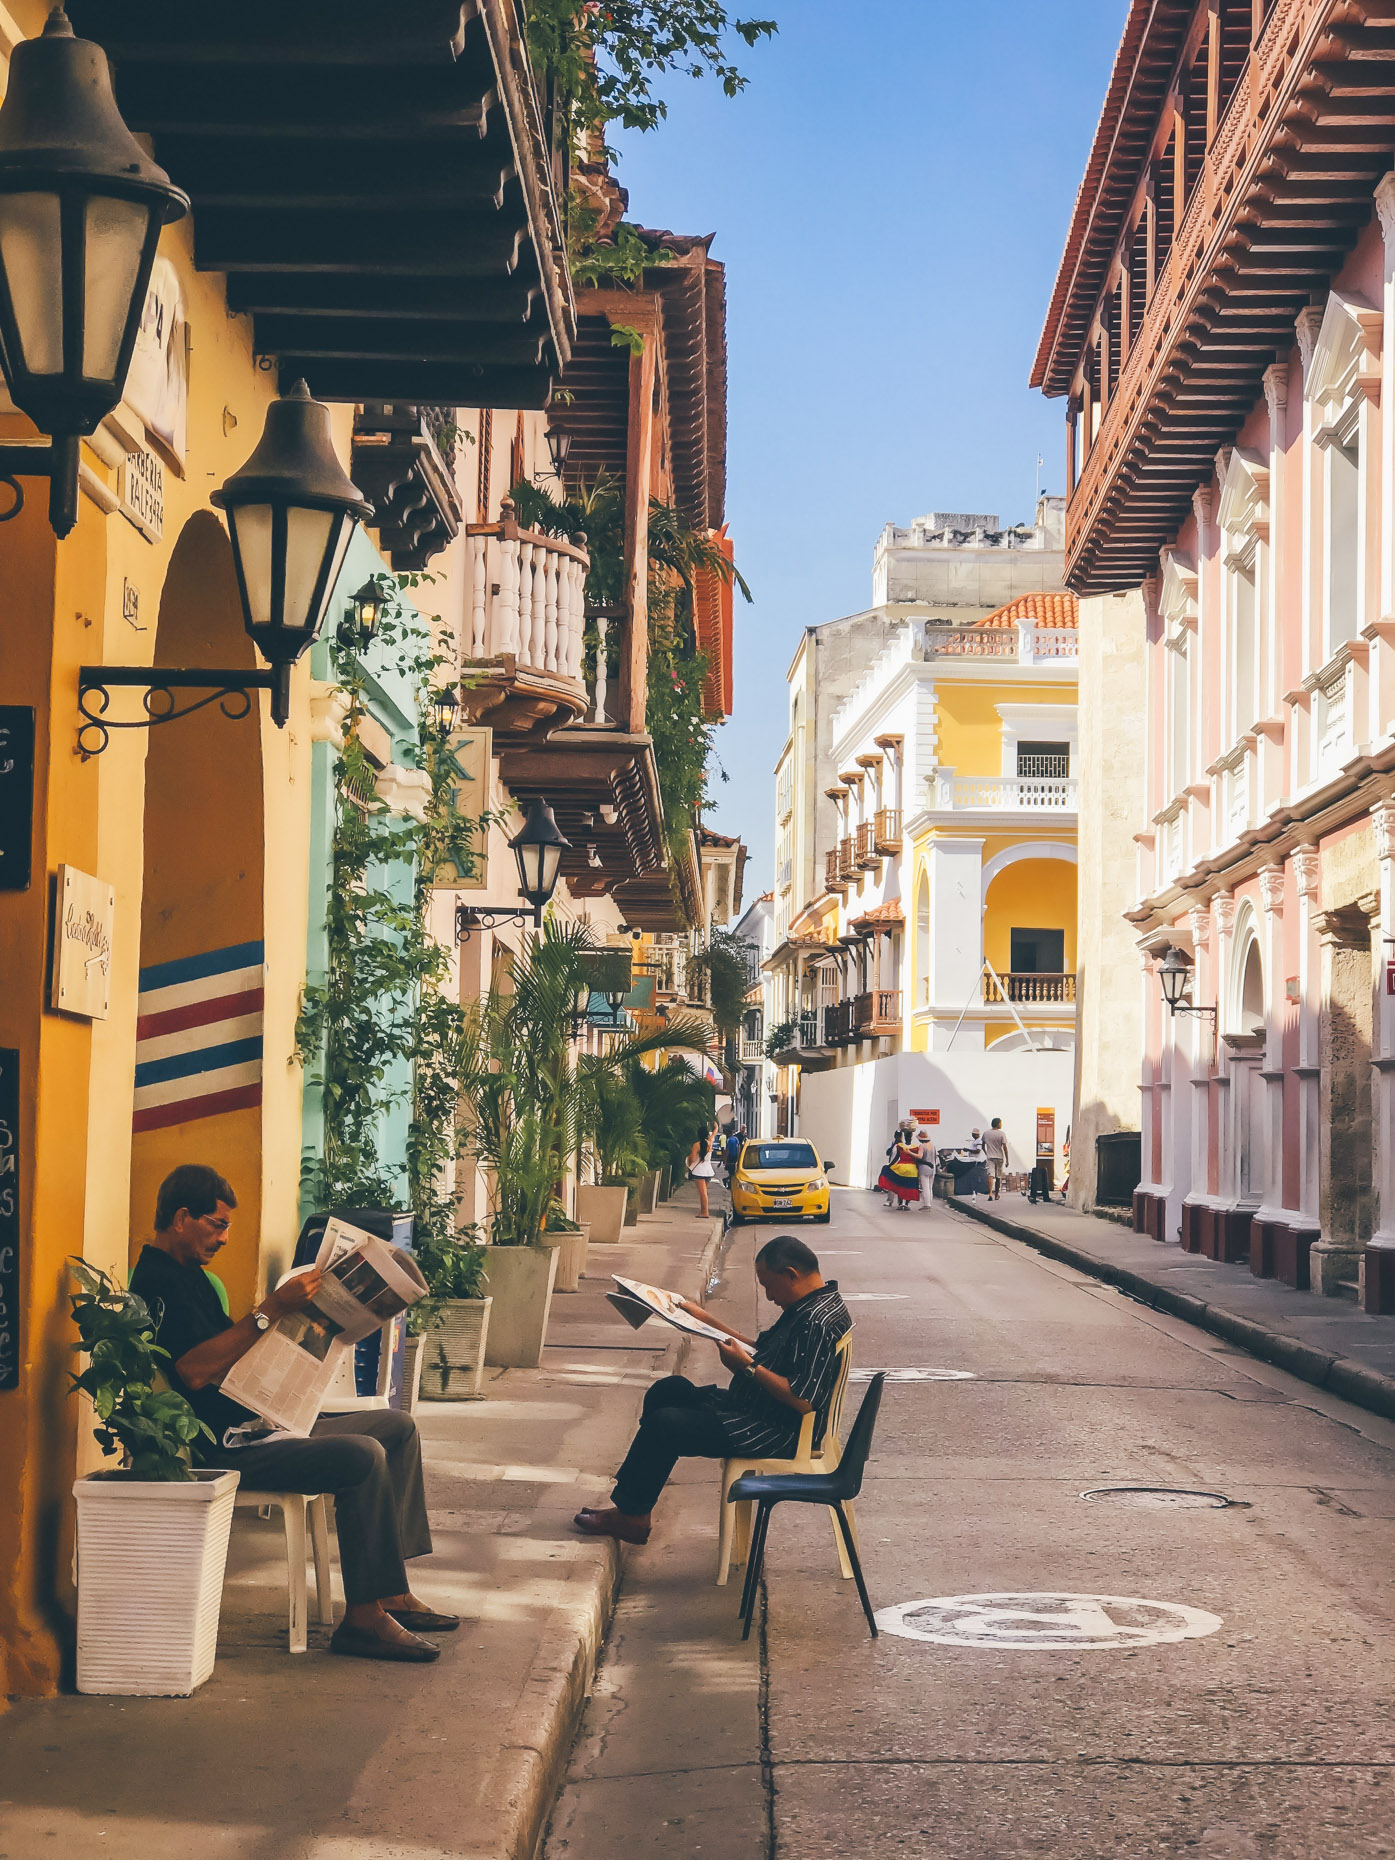 Inti St Clair photo of men in old town Cartagena Colombia reading newspapers